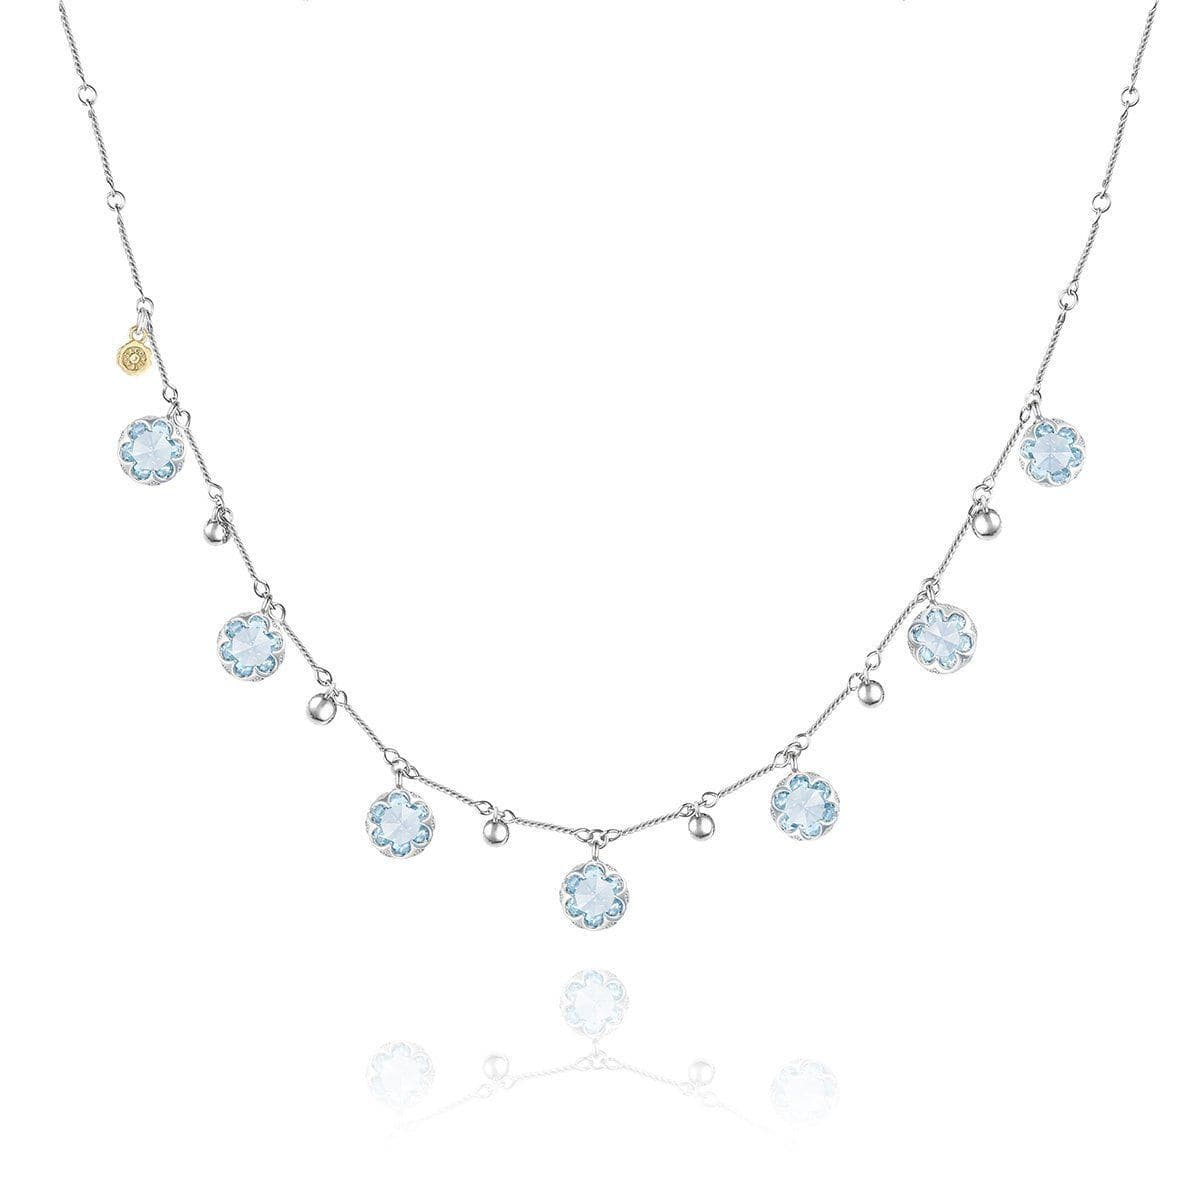 Multi-Gem Drop Necklace with Sky Blue Topaz - SN20502-Tacori-Renee Taylor Gallery